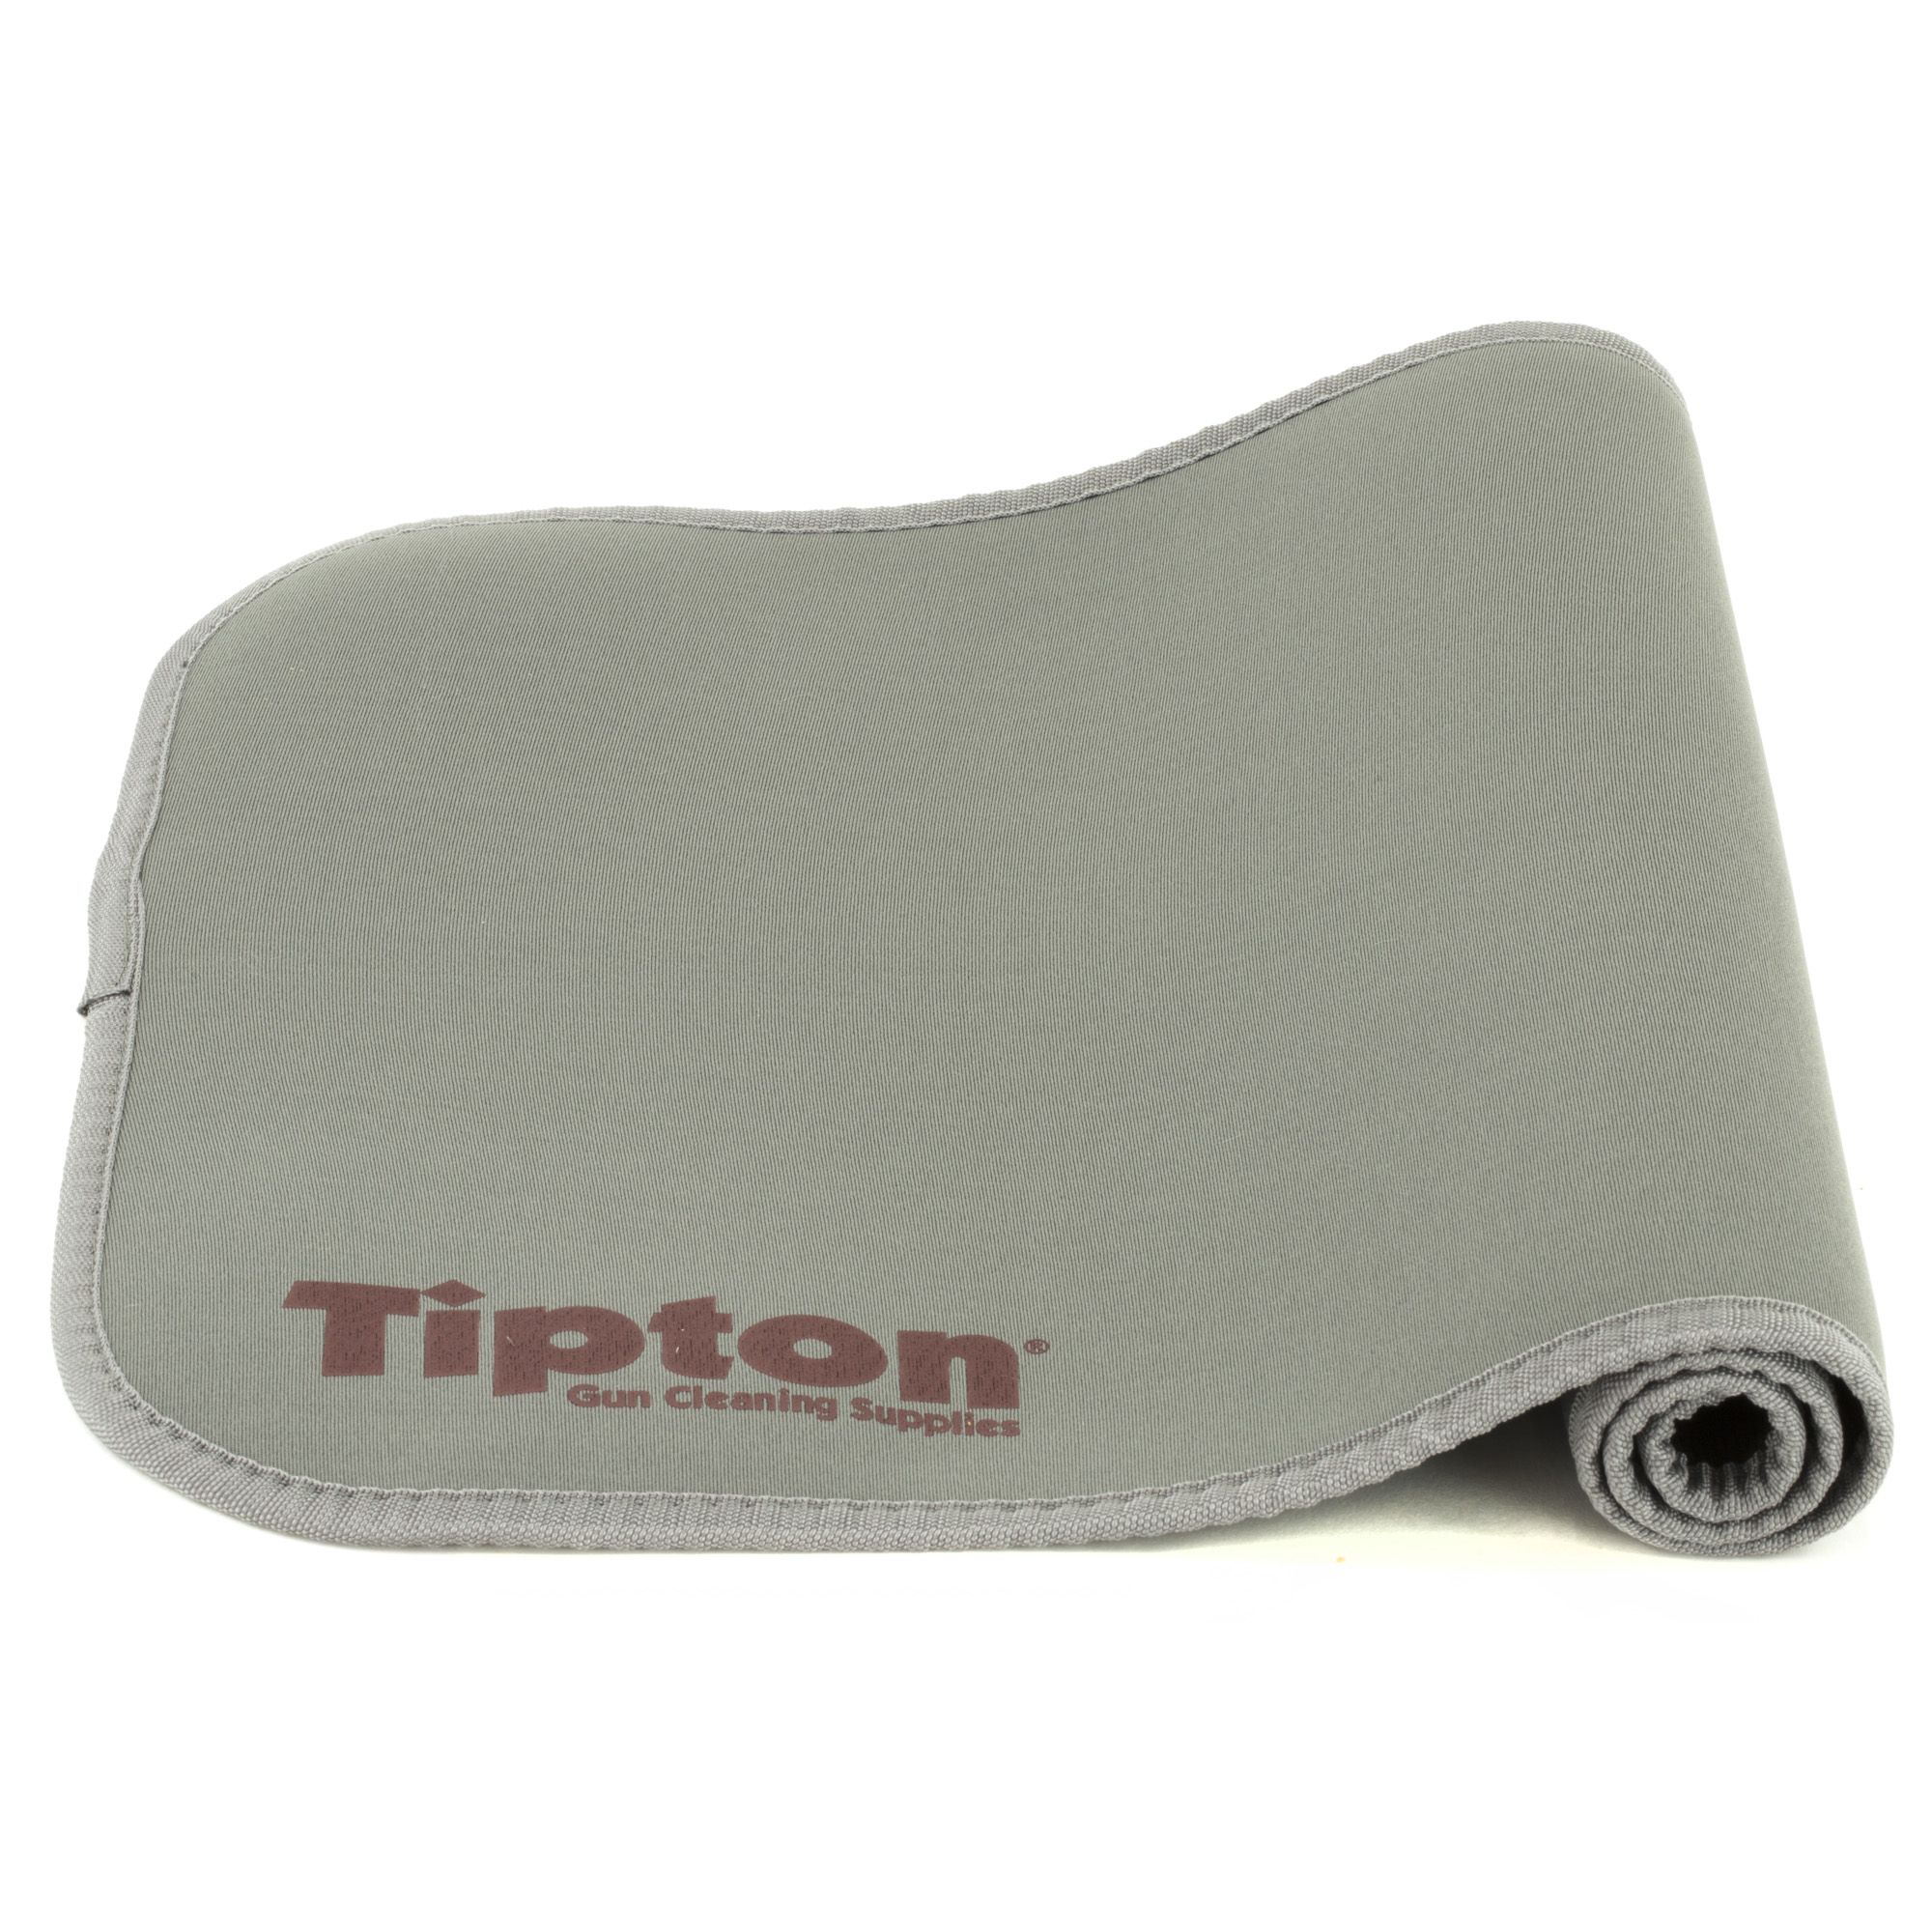 """The perfect material to lay on your workbench while cleaning or disassembling firearms. Padded neoprene construction protects firearm finishes while helping keep track of small parts. Excess oils and solvents are absorbed into the mat"""" keeping the surface clean and dry. The Tipton(R) Maintenance Mat rolls easily to fit in your range box. Hand washable"""